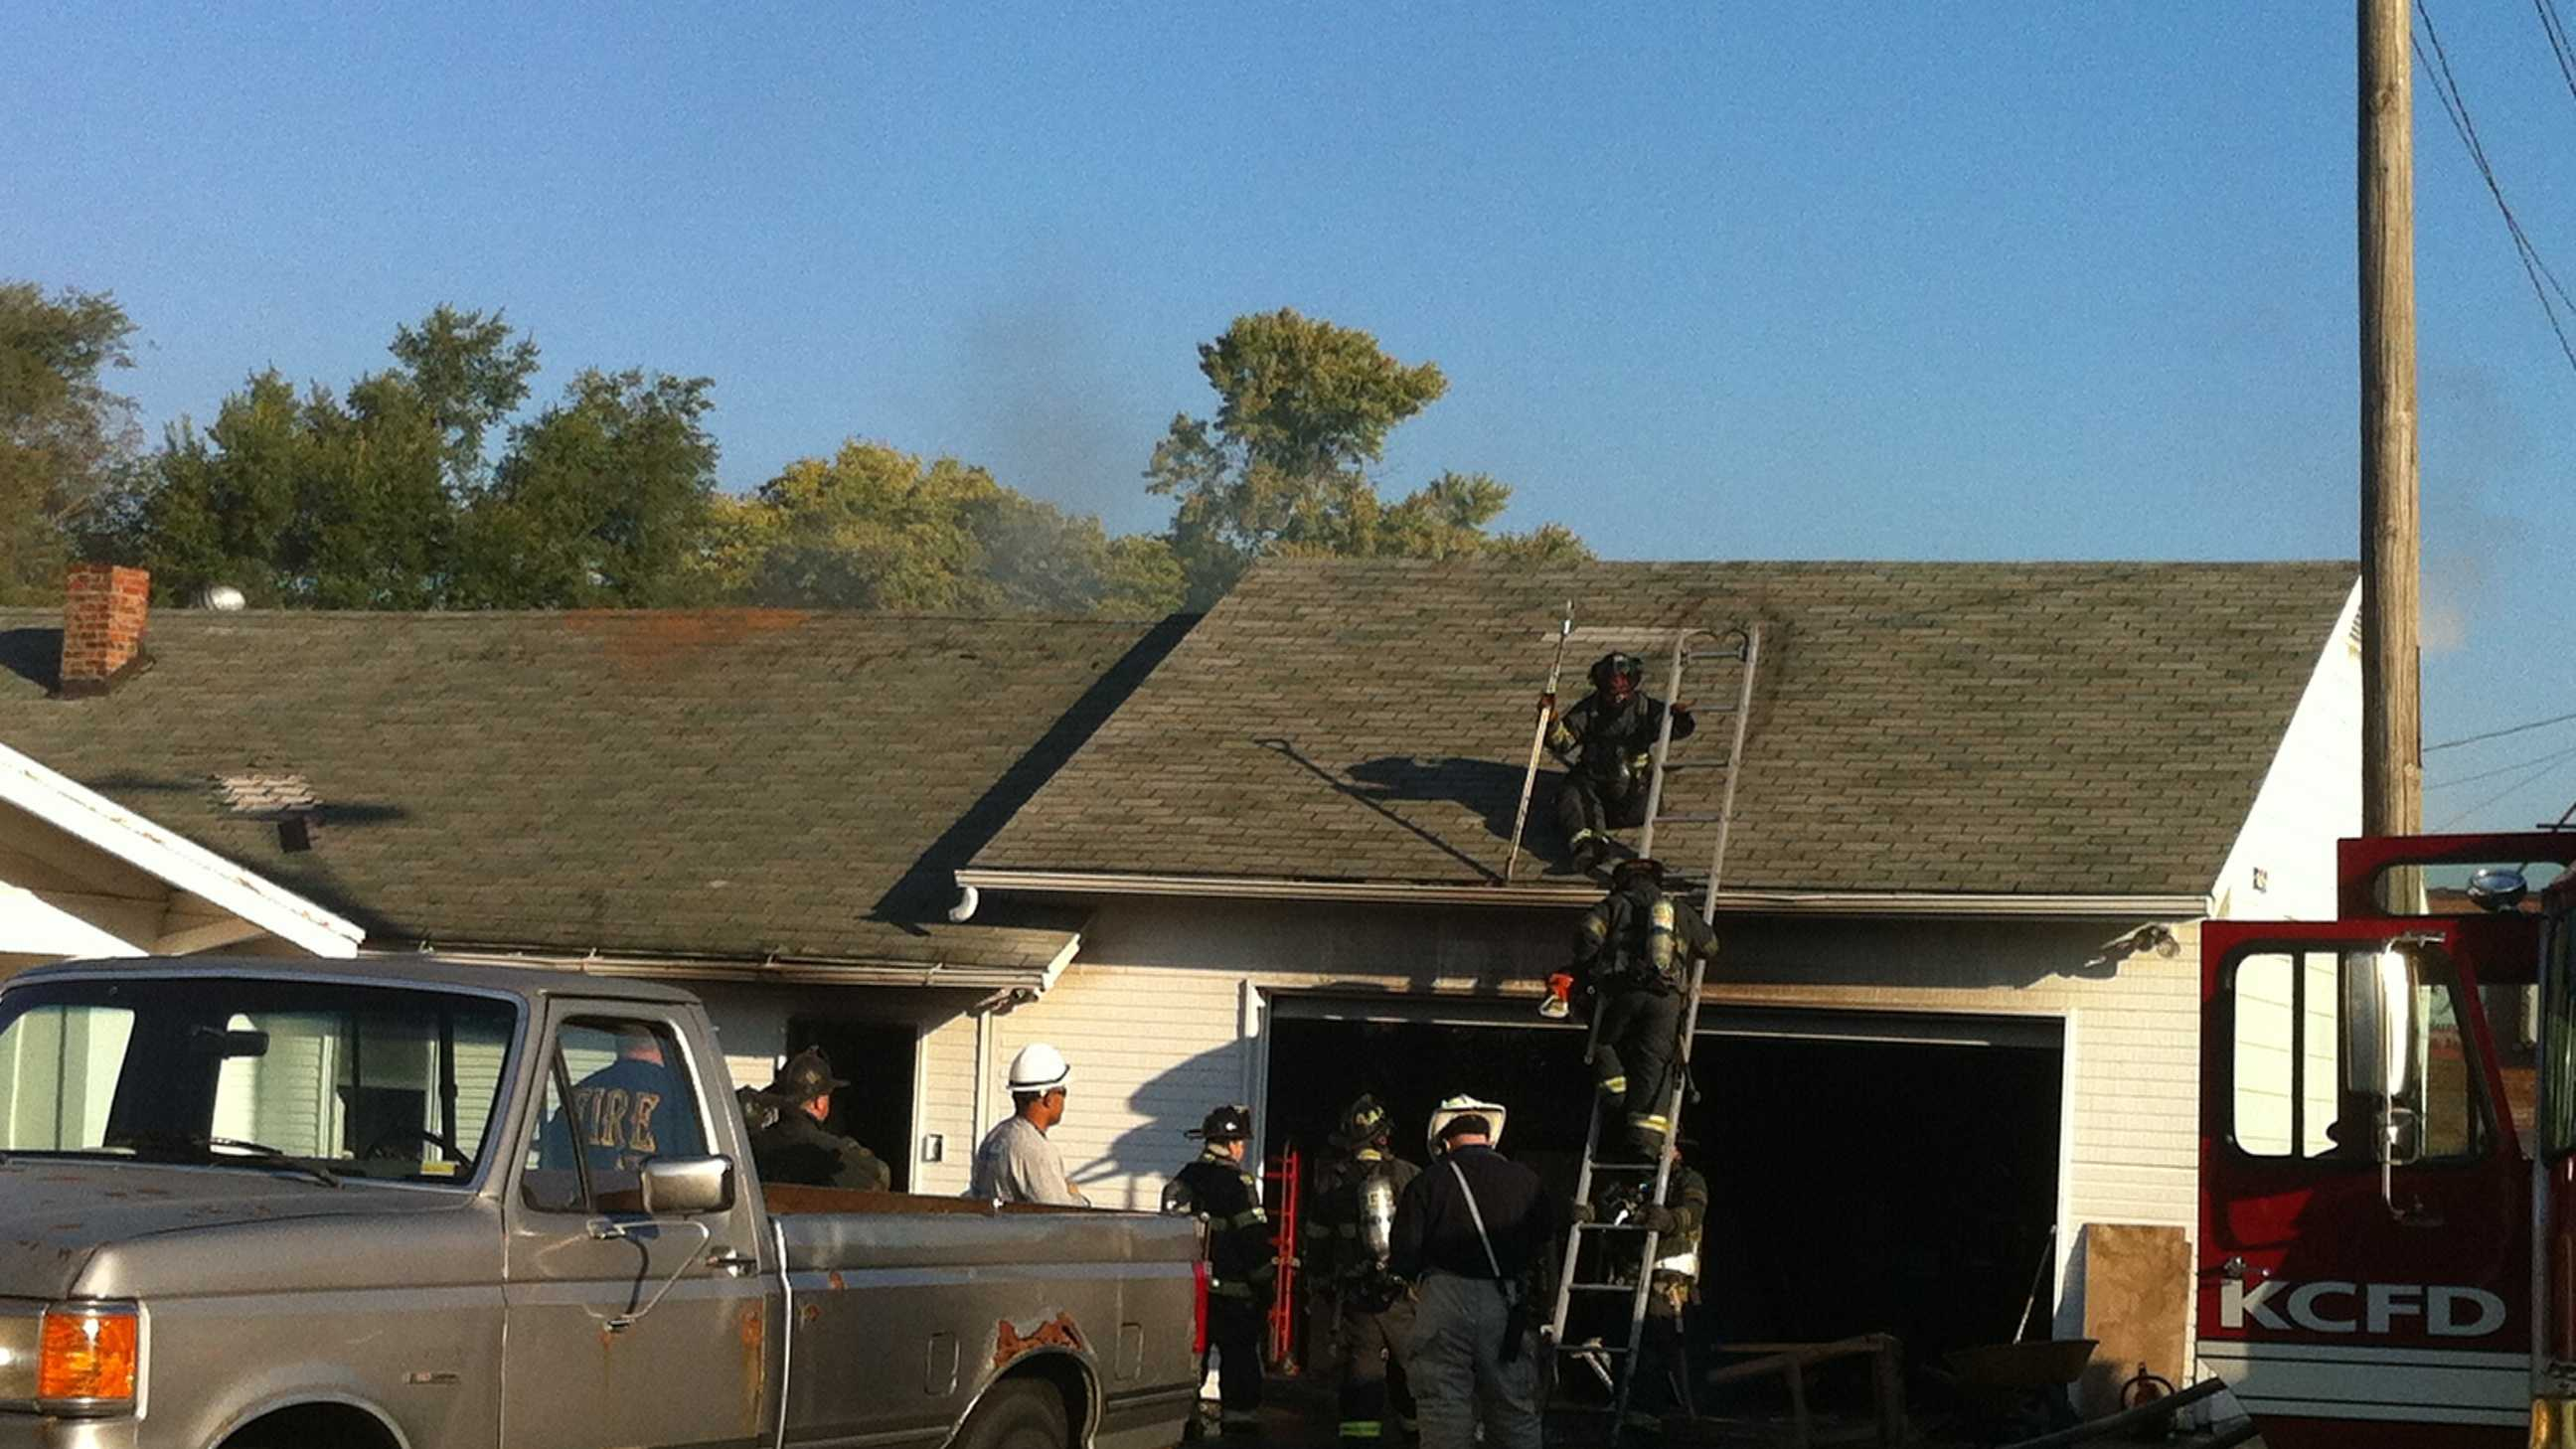 81st, Paseo building fire